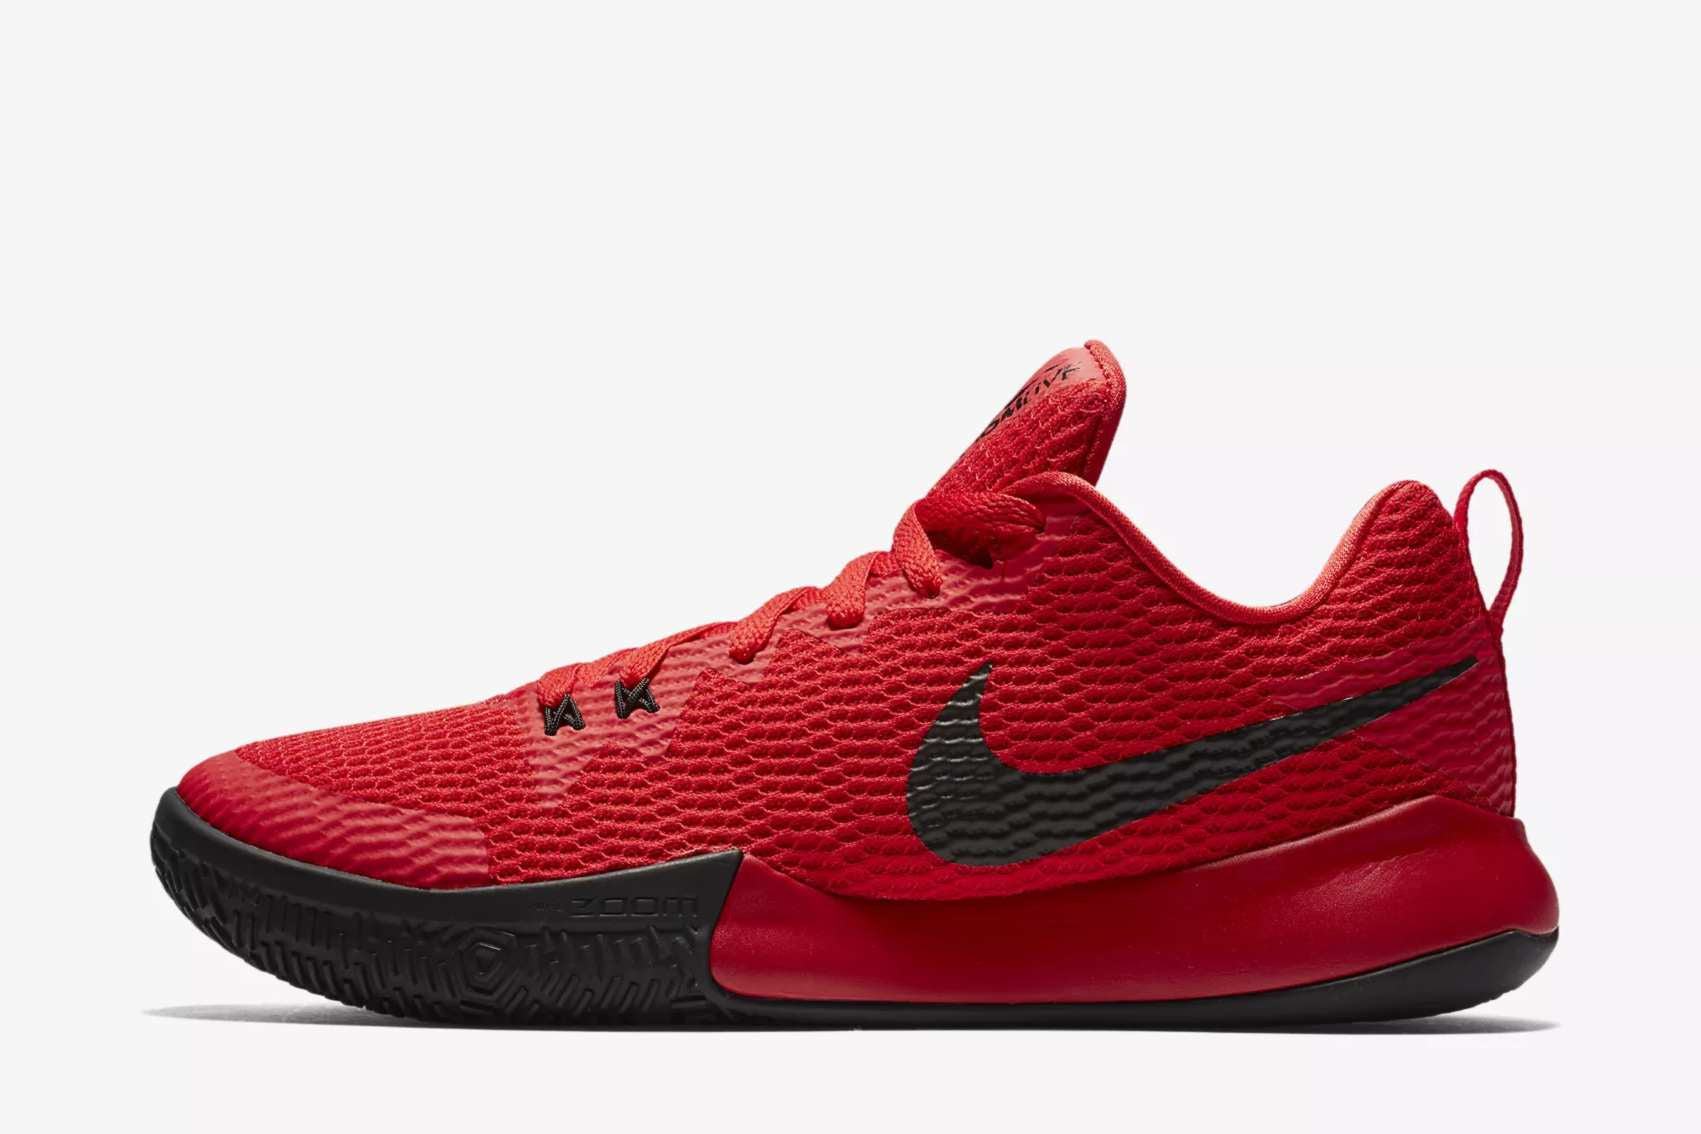 Nike Basketball Zoom Live II Basketball Shoe - NK-AH7566-600